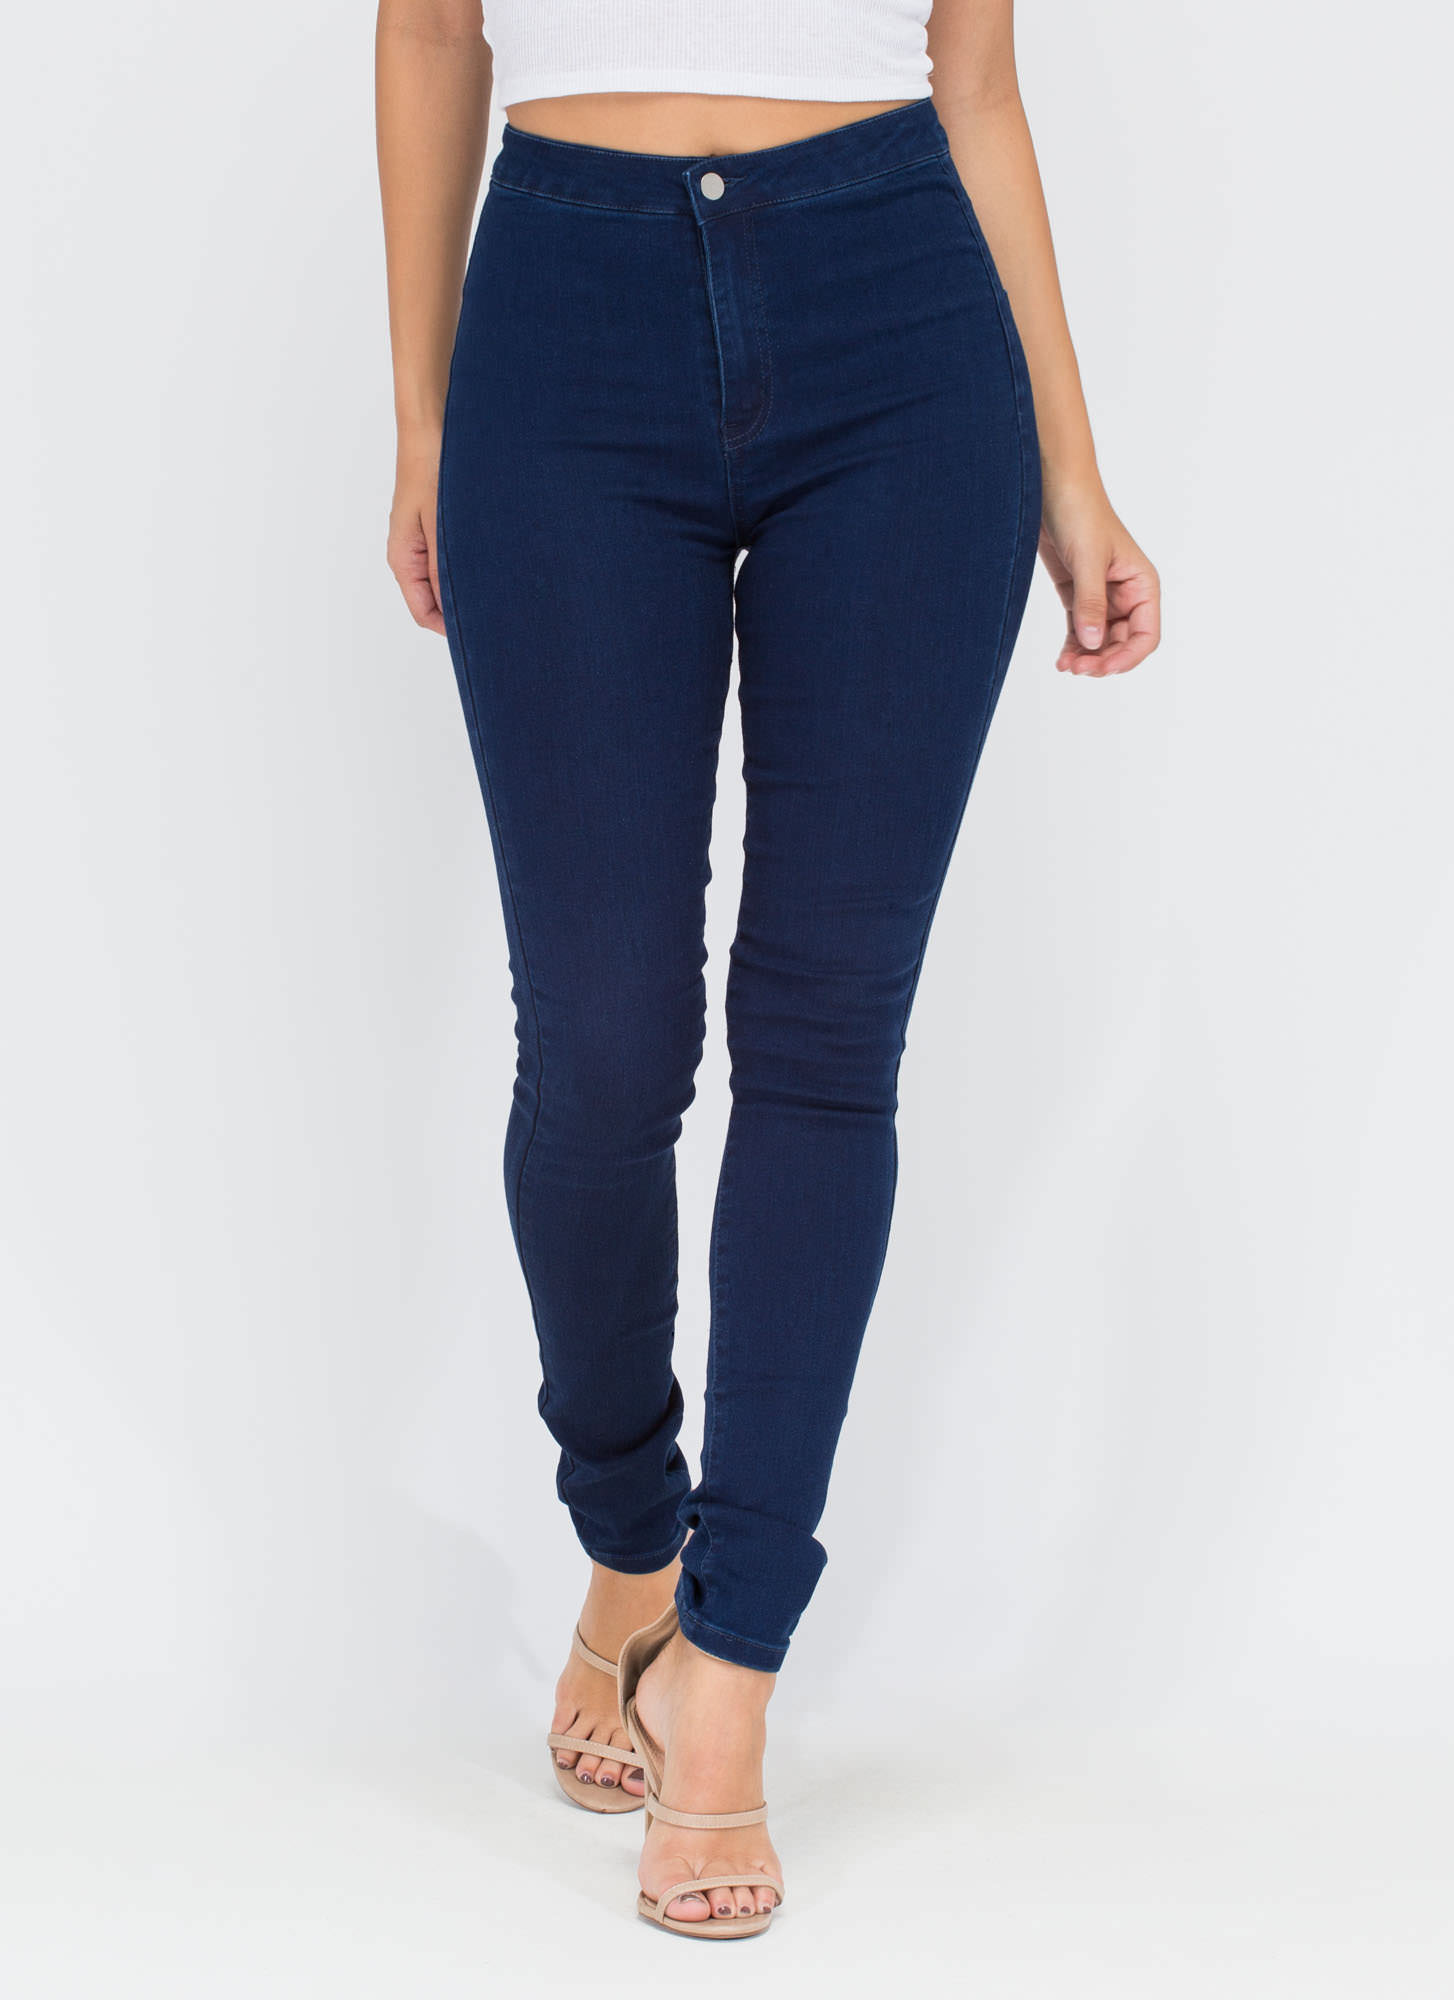 Shapely Design High-Waisted Jeans DKBLUE